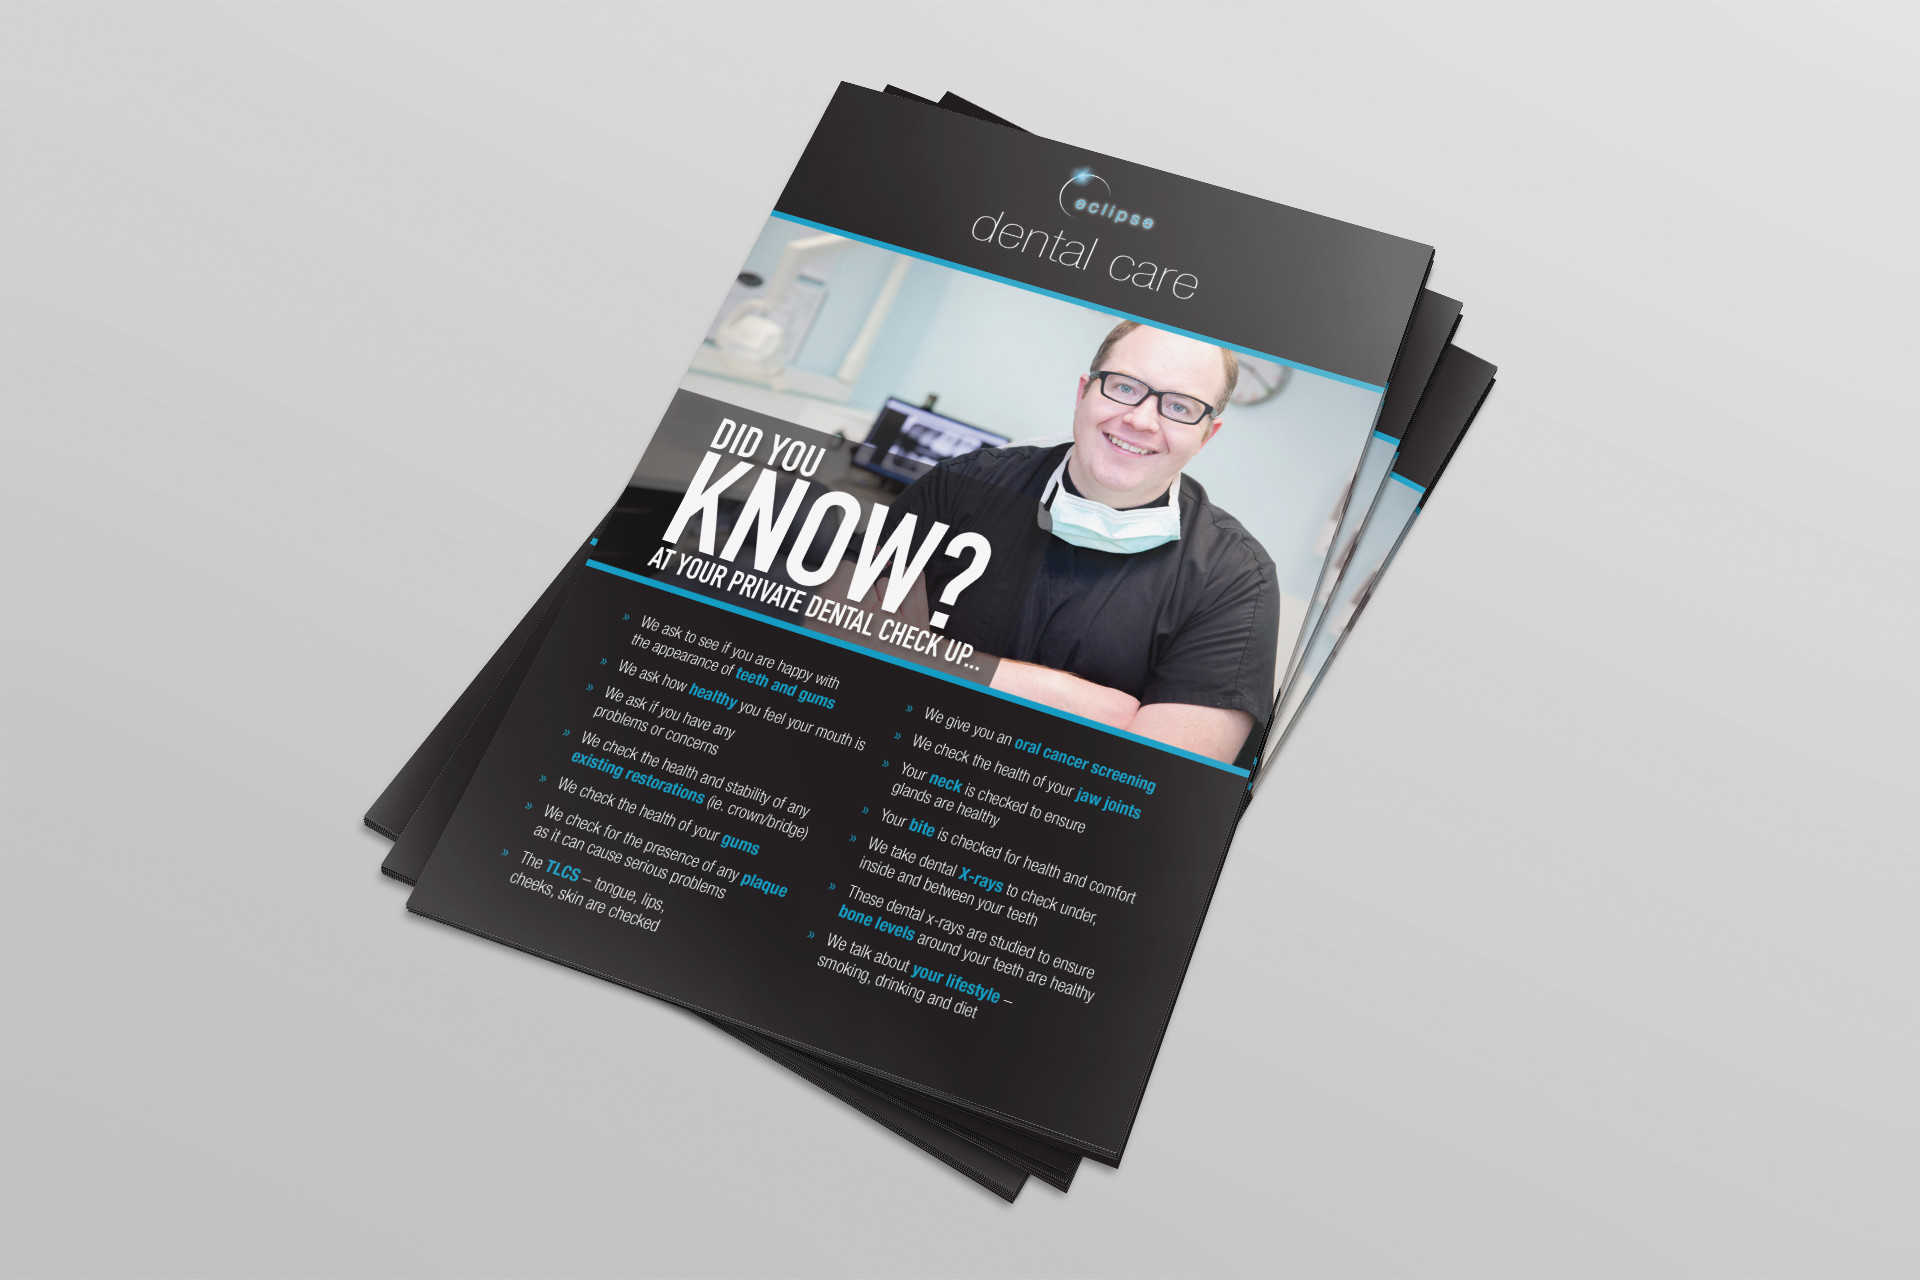 Flyer-design-Glasgow-Edinburgh-West-Lothian-22.jpg